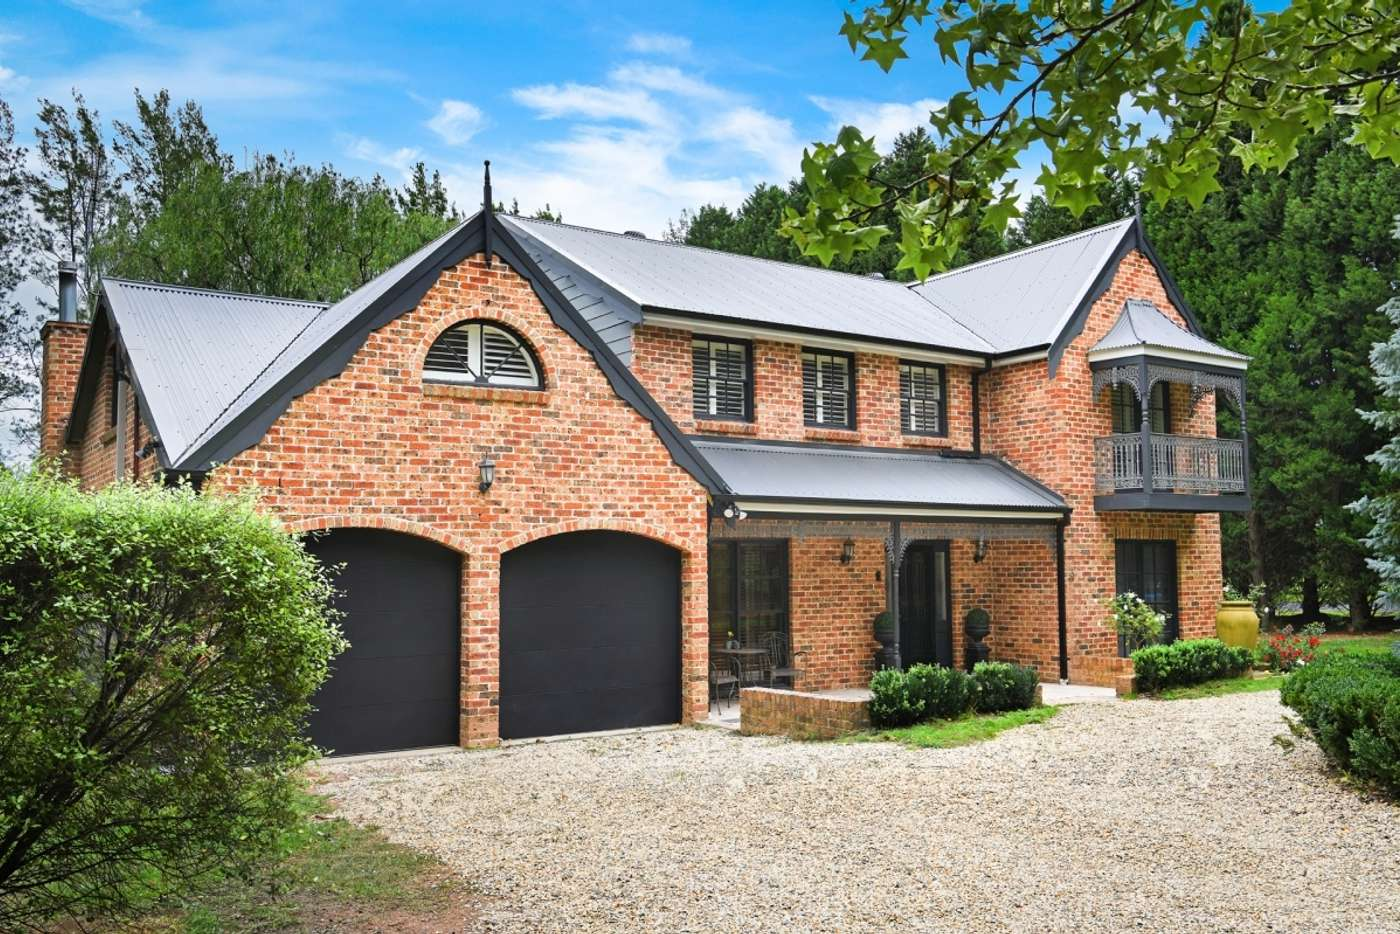 Main view of Homely house listing, 39 Sunninghill Avenue, Burradoo NSW 2576